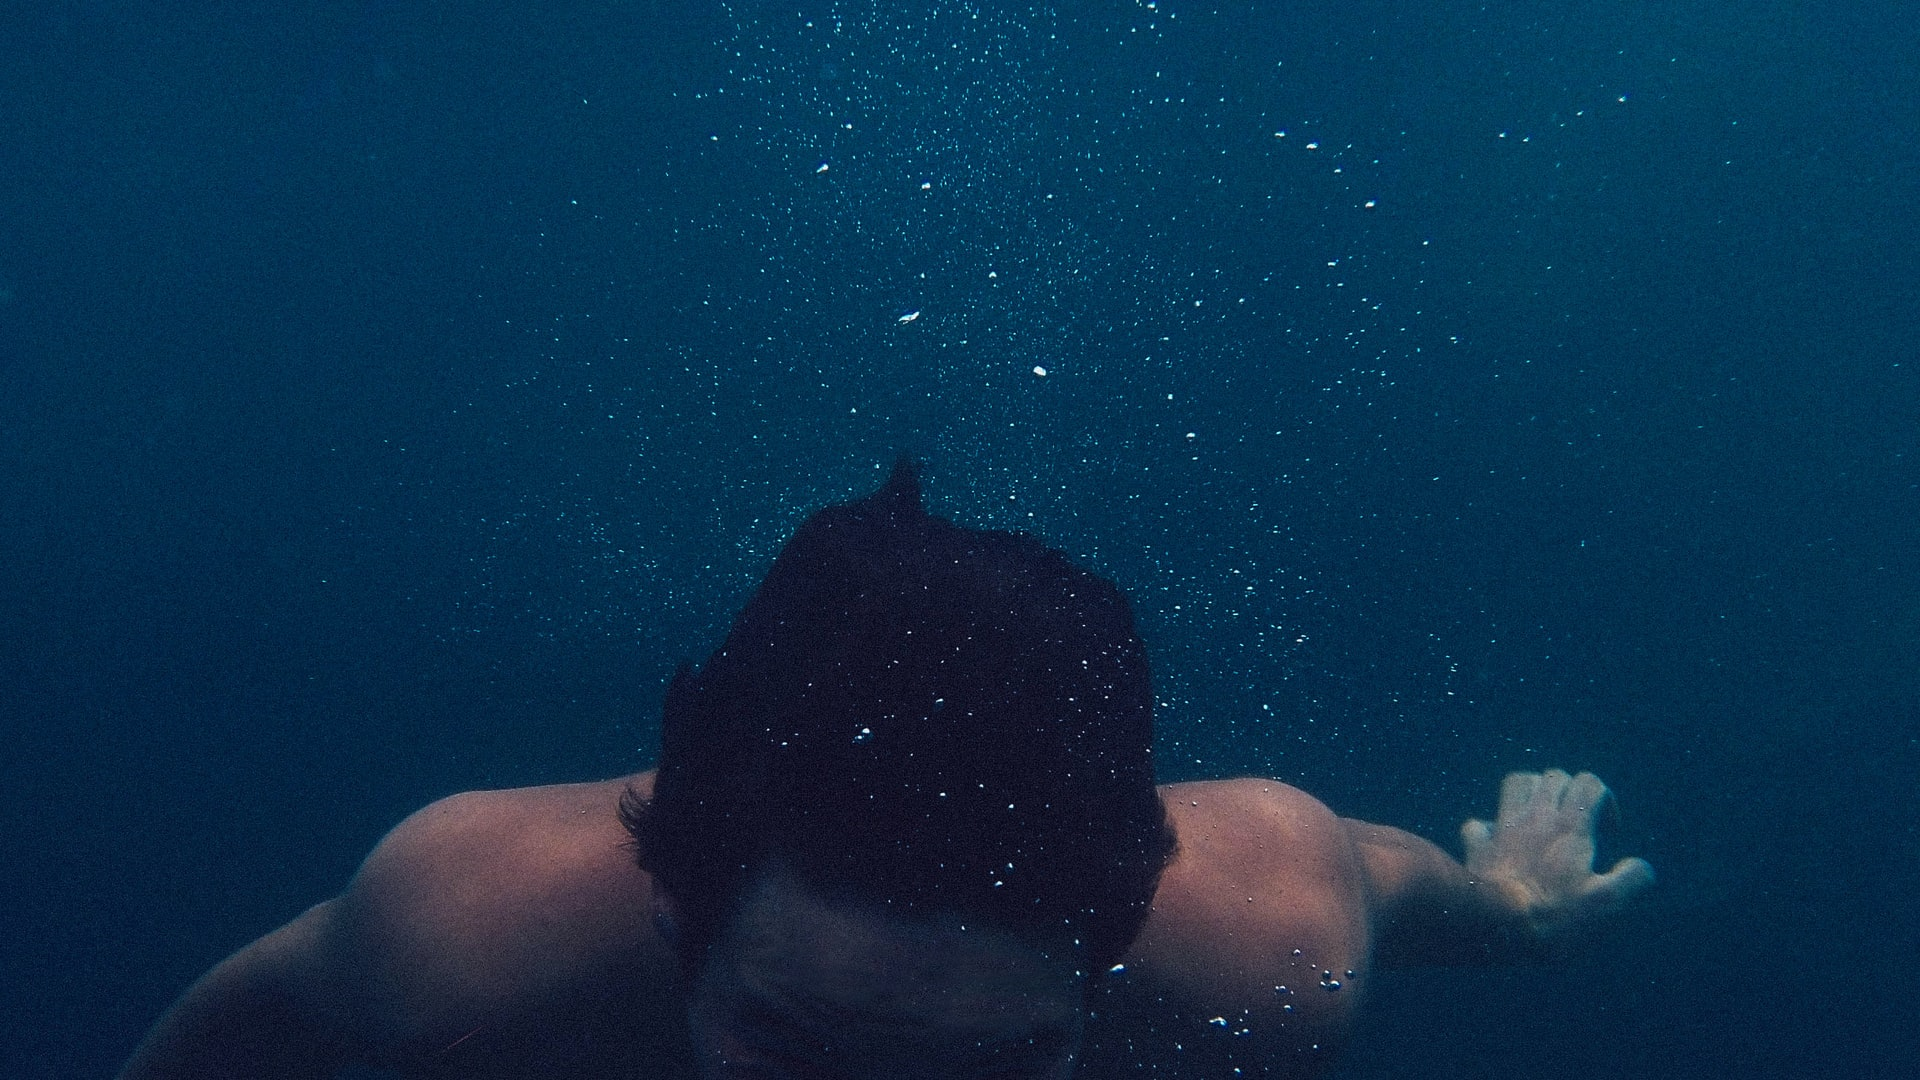 Man completey submerged in water